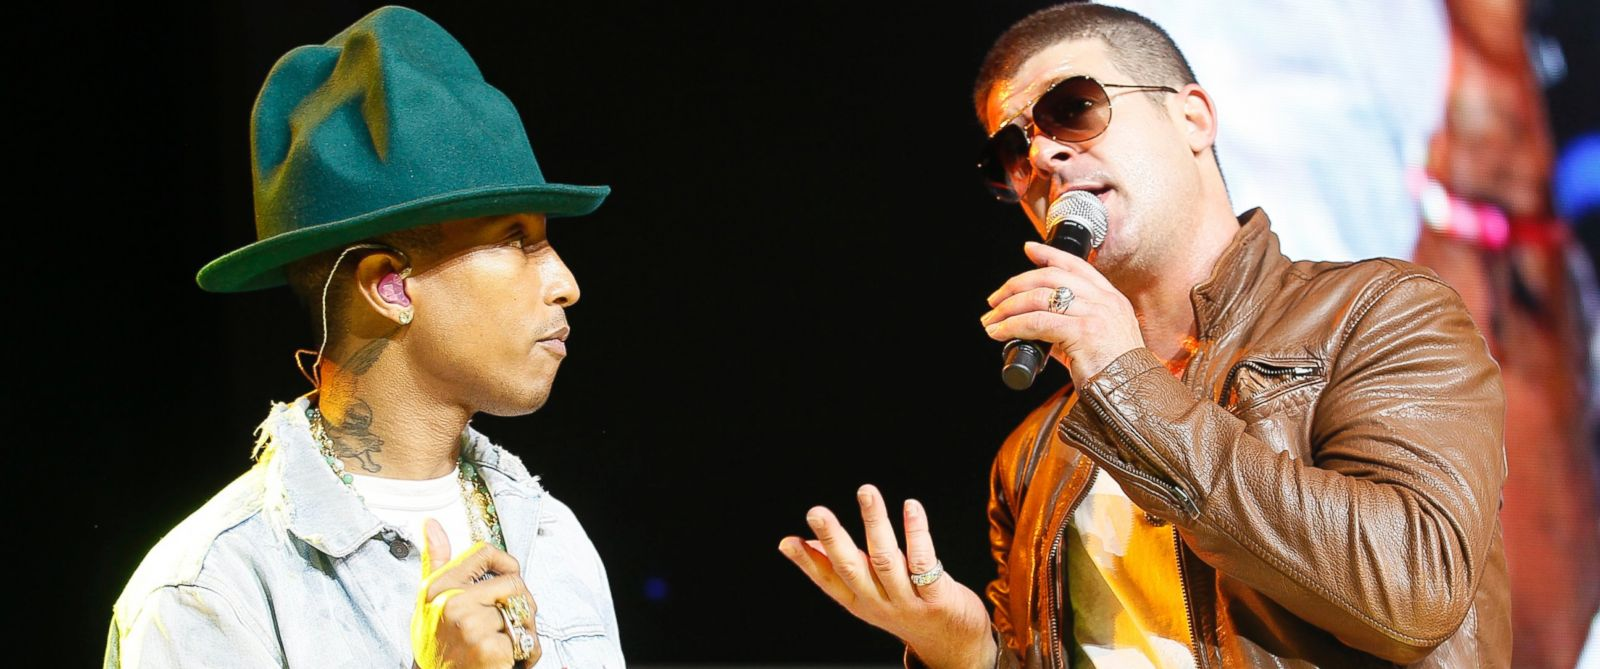 PHOTO: Pharrell Williams and Robin Thicke perform together at the Walmart annual shareholders meeting in Fayetteville, Ark., June 6, 2014.